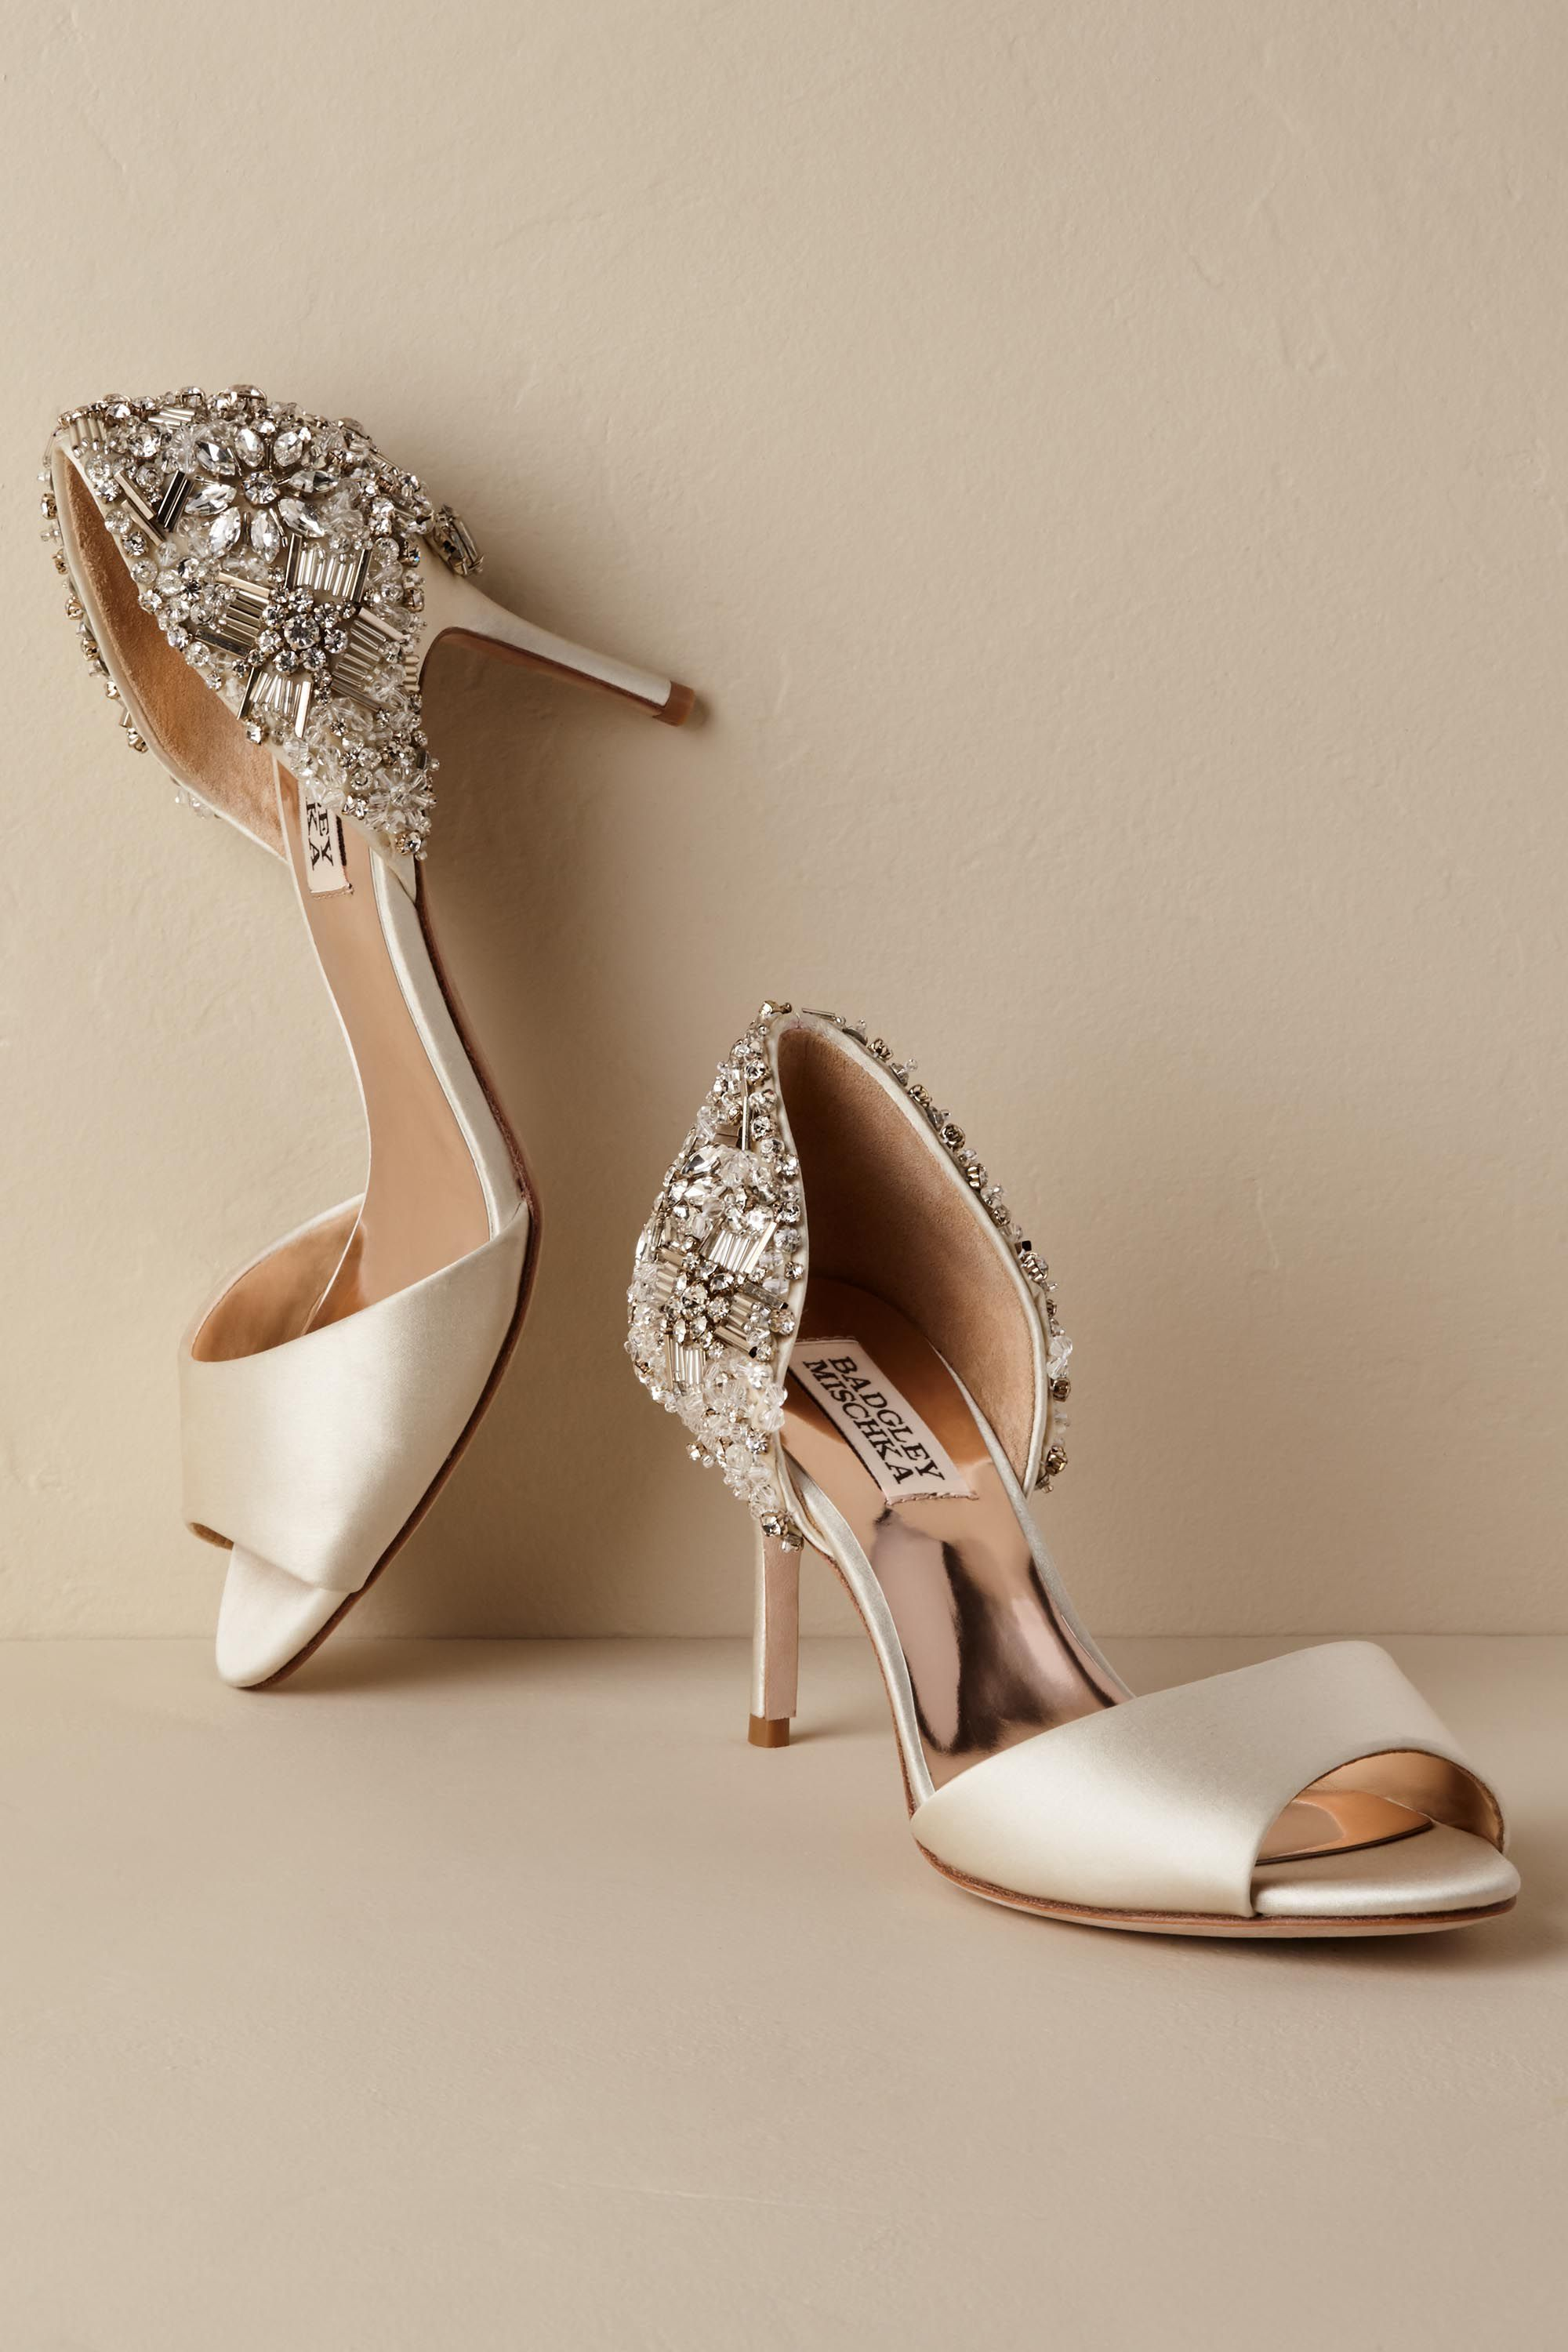 Sandie Heels From Bhldn Wedding Shoes Bridal Shoes Ivory Bridal Shoes